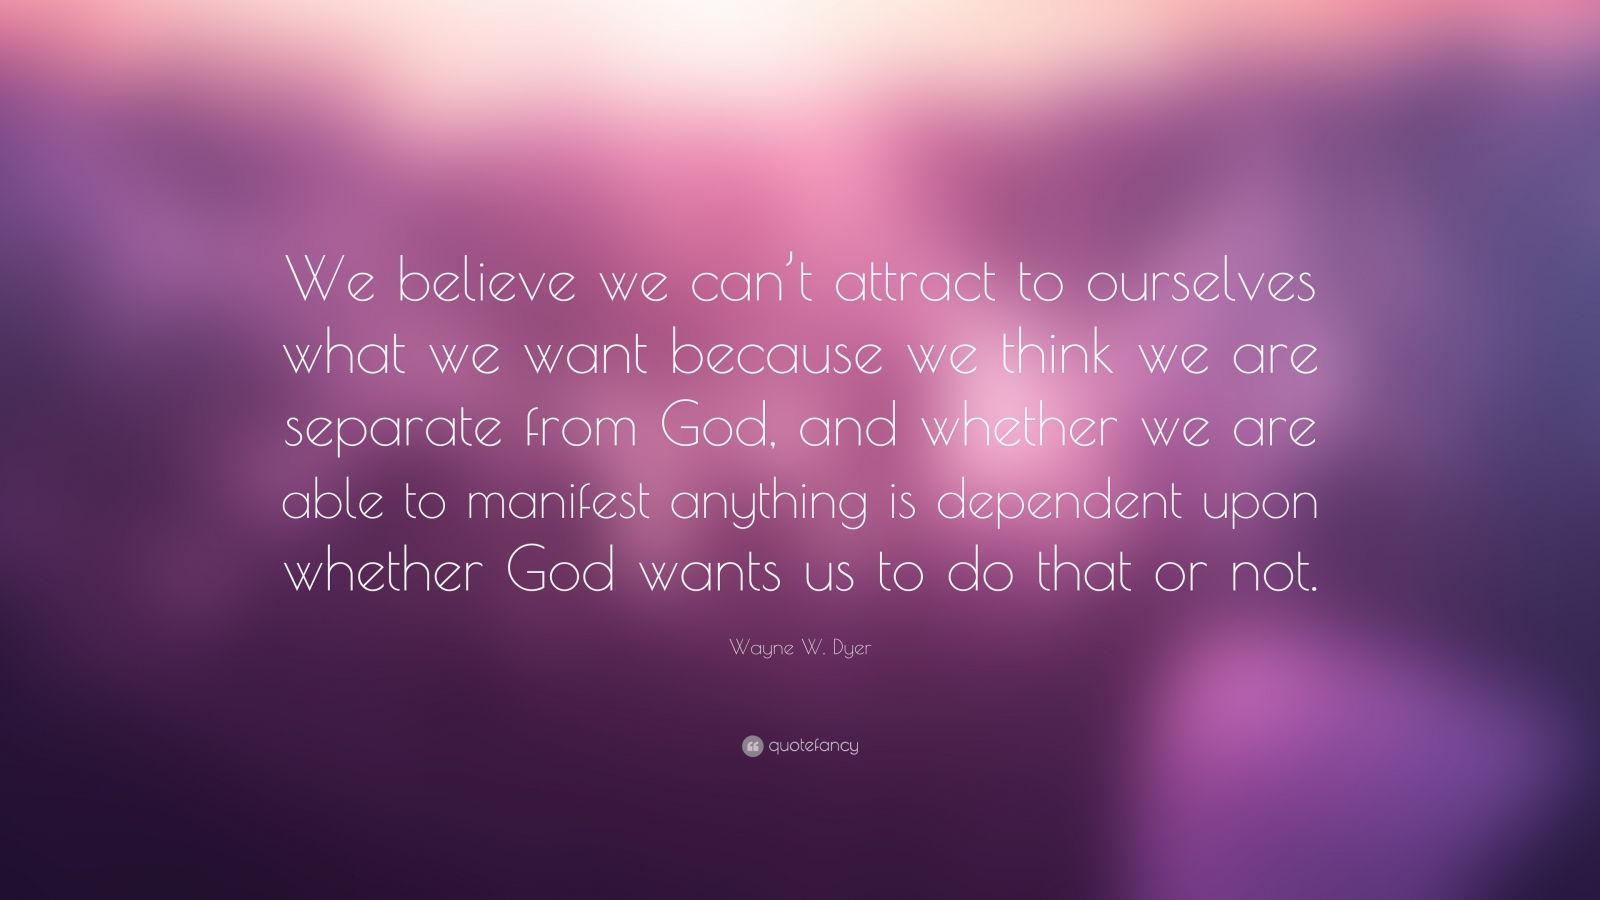 """Wayne W. Dyer Quote: """"We believe we can't attract to ourselves what we want because we think we are separate from God, and whether we are able to manifest anything is dependent upon whether God wants us to do that or not."""""""